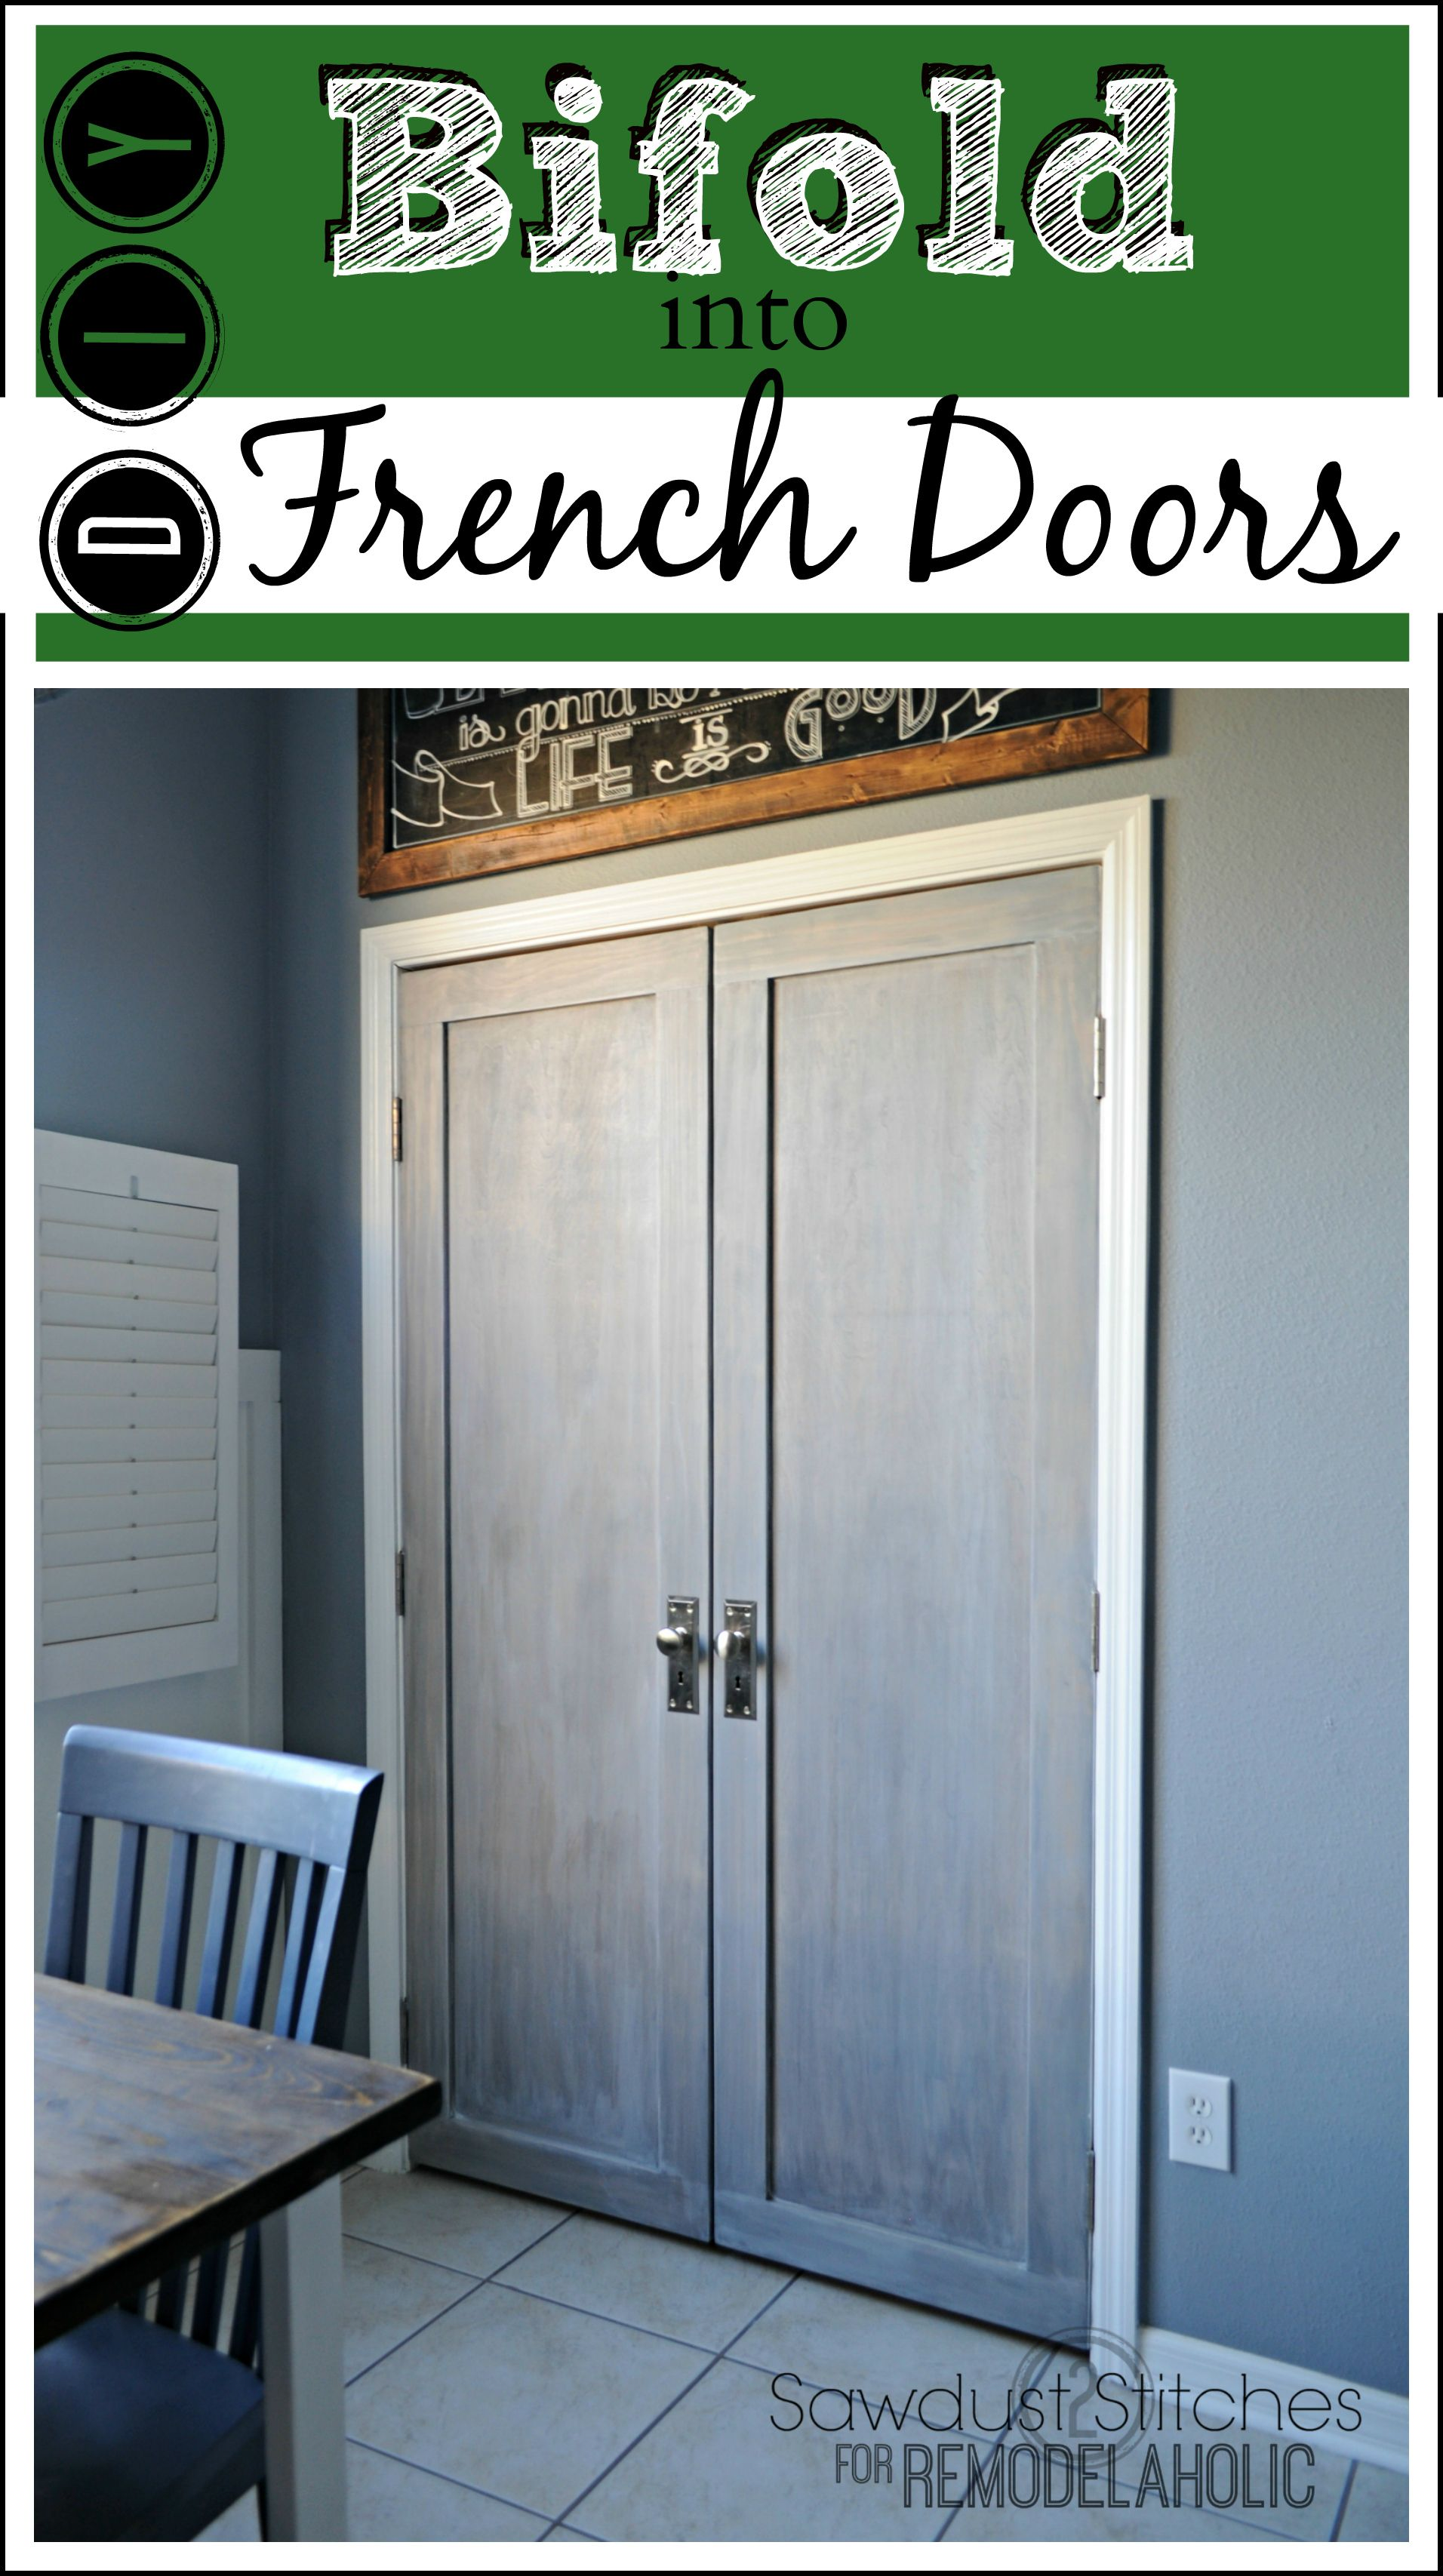 Superior Builder Basic Bifold Door Makeover, Into Stylish French Doors   Tutorial  From Sawdust2Stitches On Remodelaholic.com